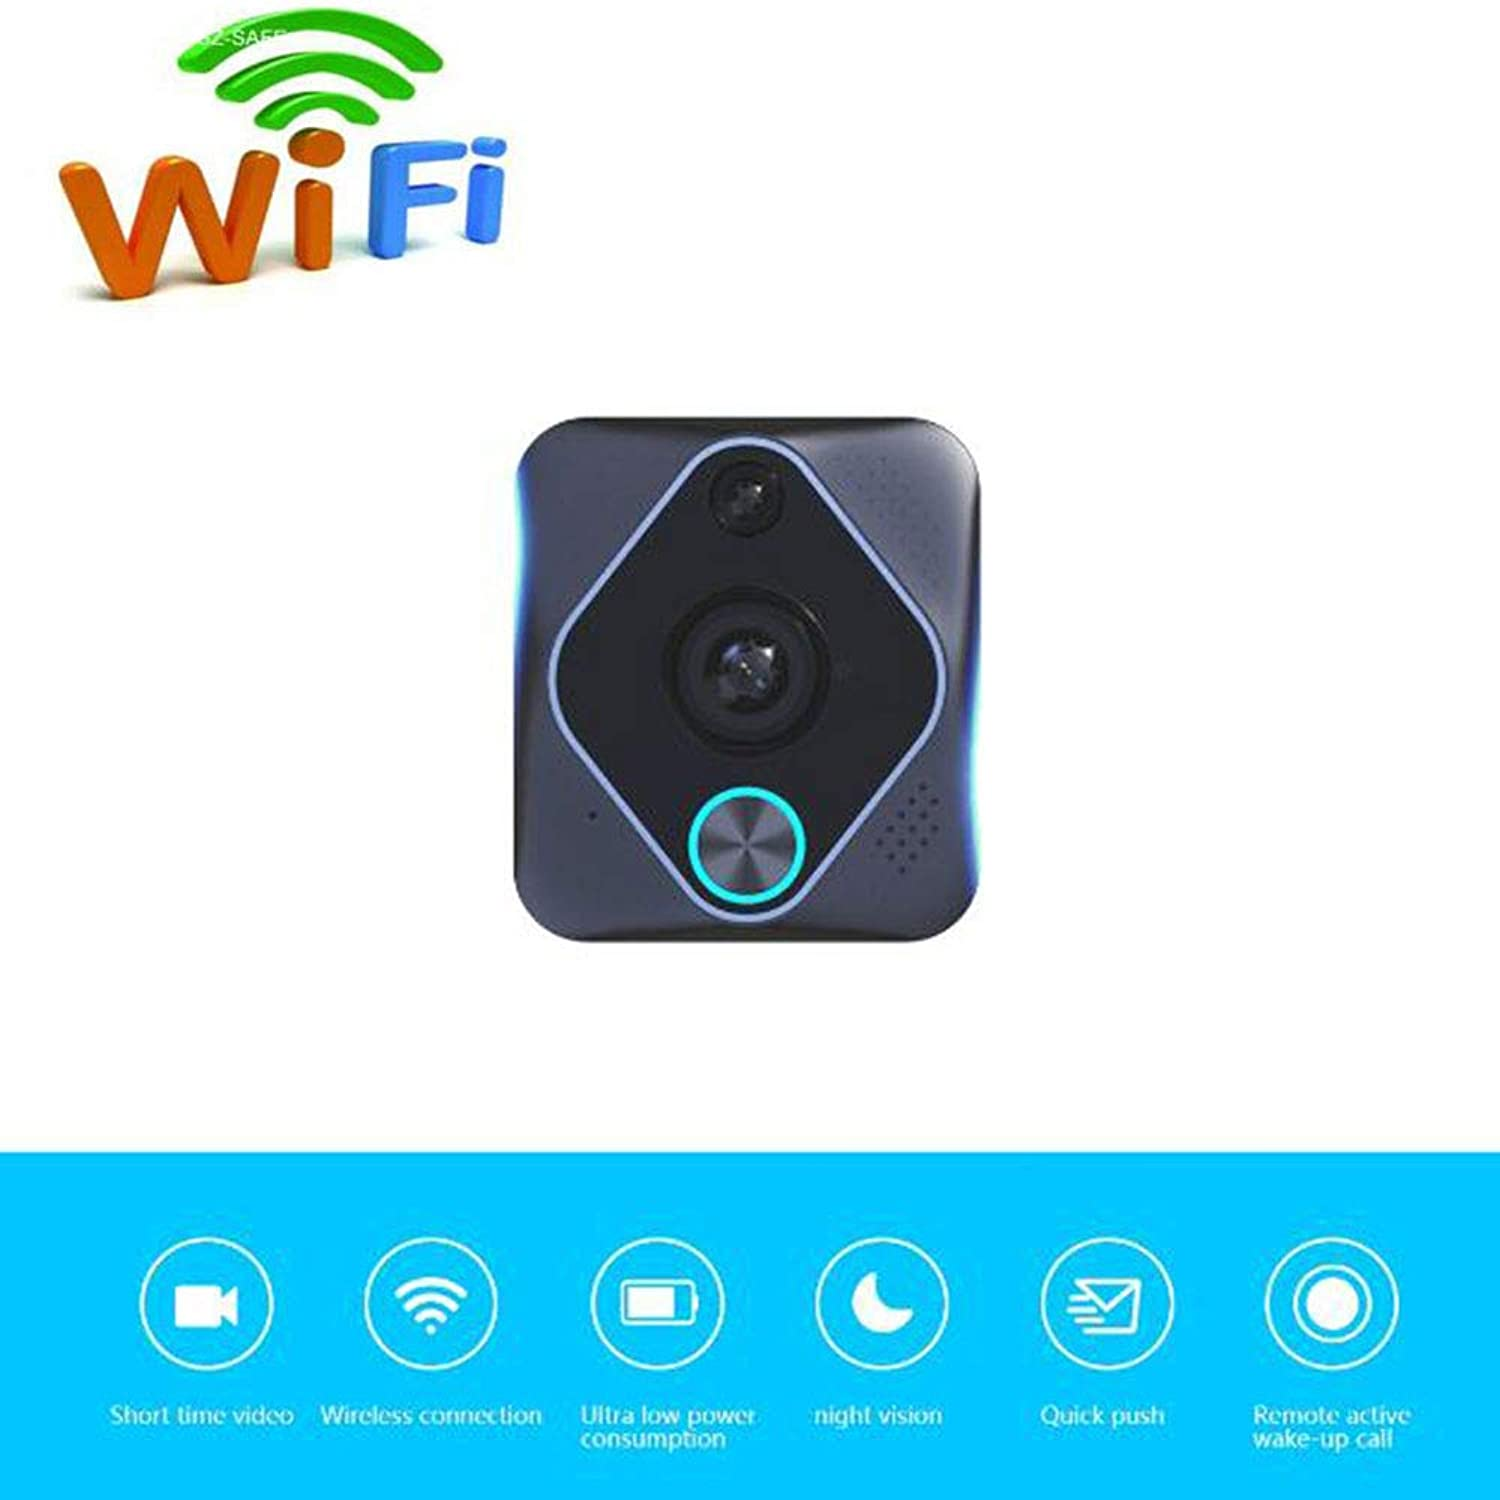 LMtt Smart Video Doorbell Wireless Antitheft Truly Wirefree Camera, 2600ma Battery, 2Way Talk, Night Vision, PIR Detection, APP Control